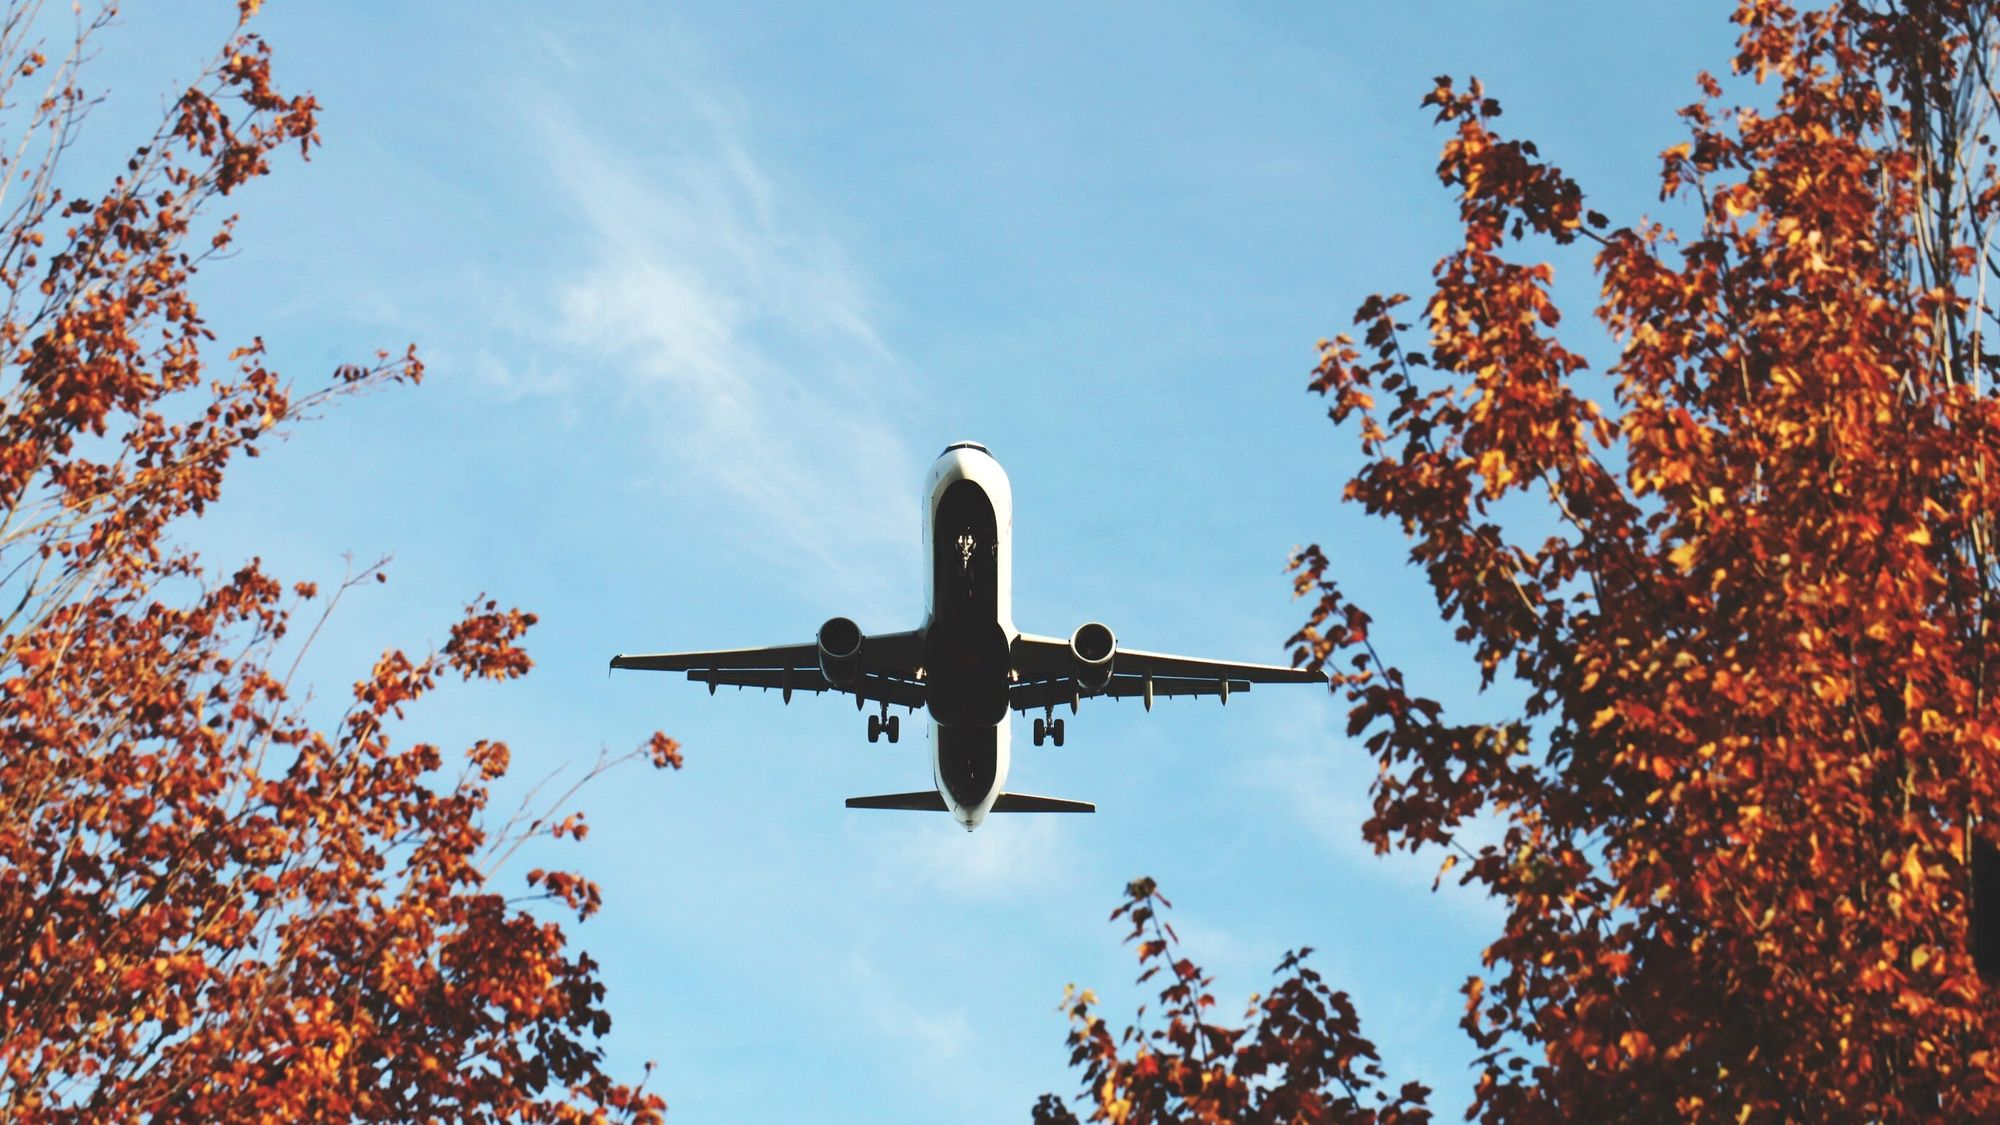 Is It Safe to Plan International Fall Travel Right Now?